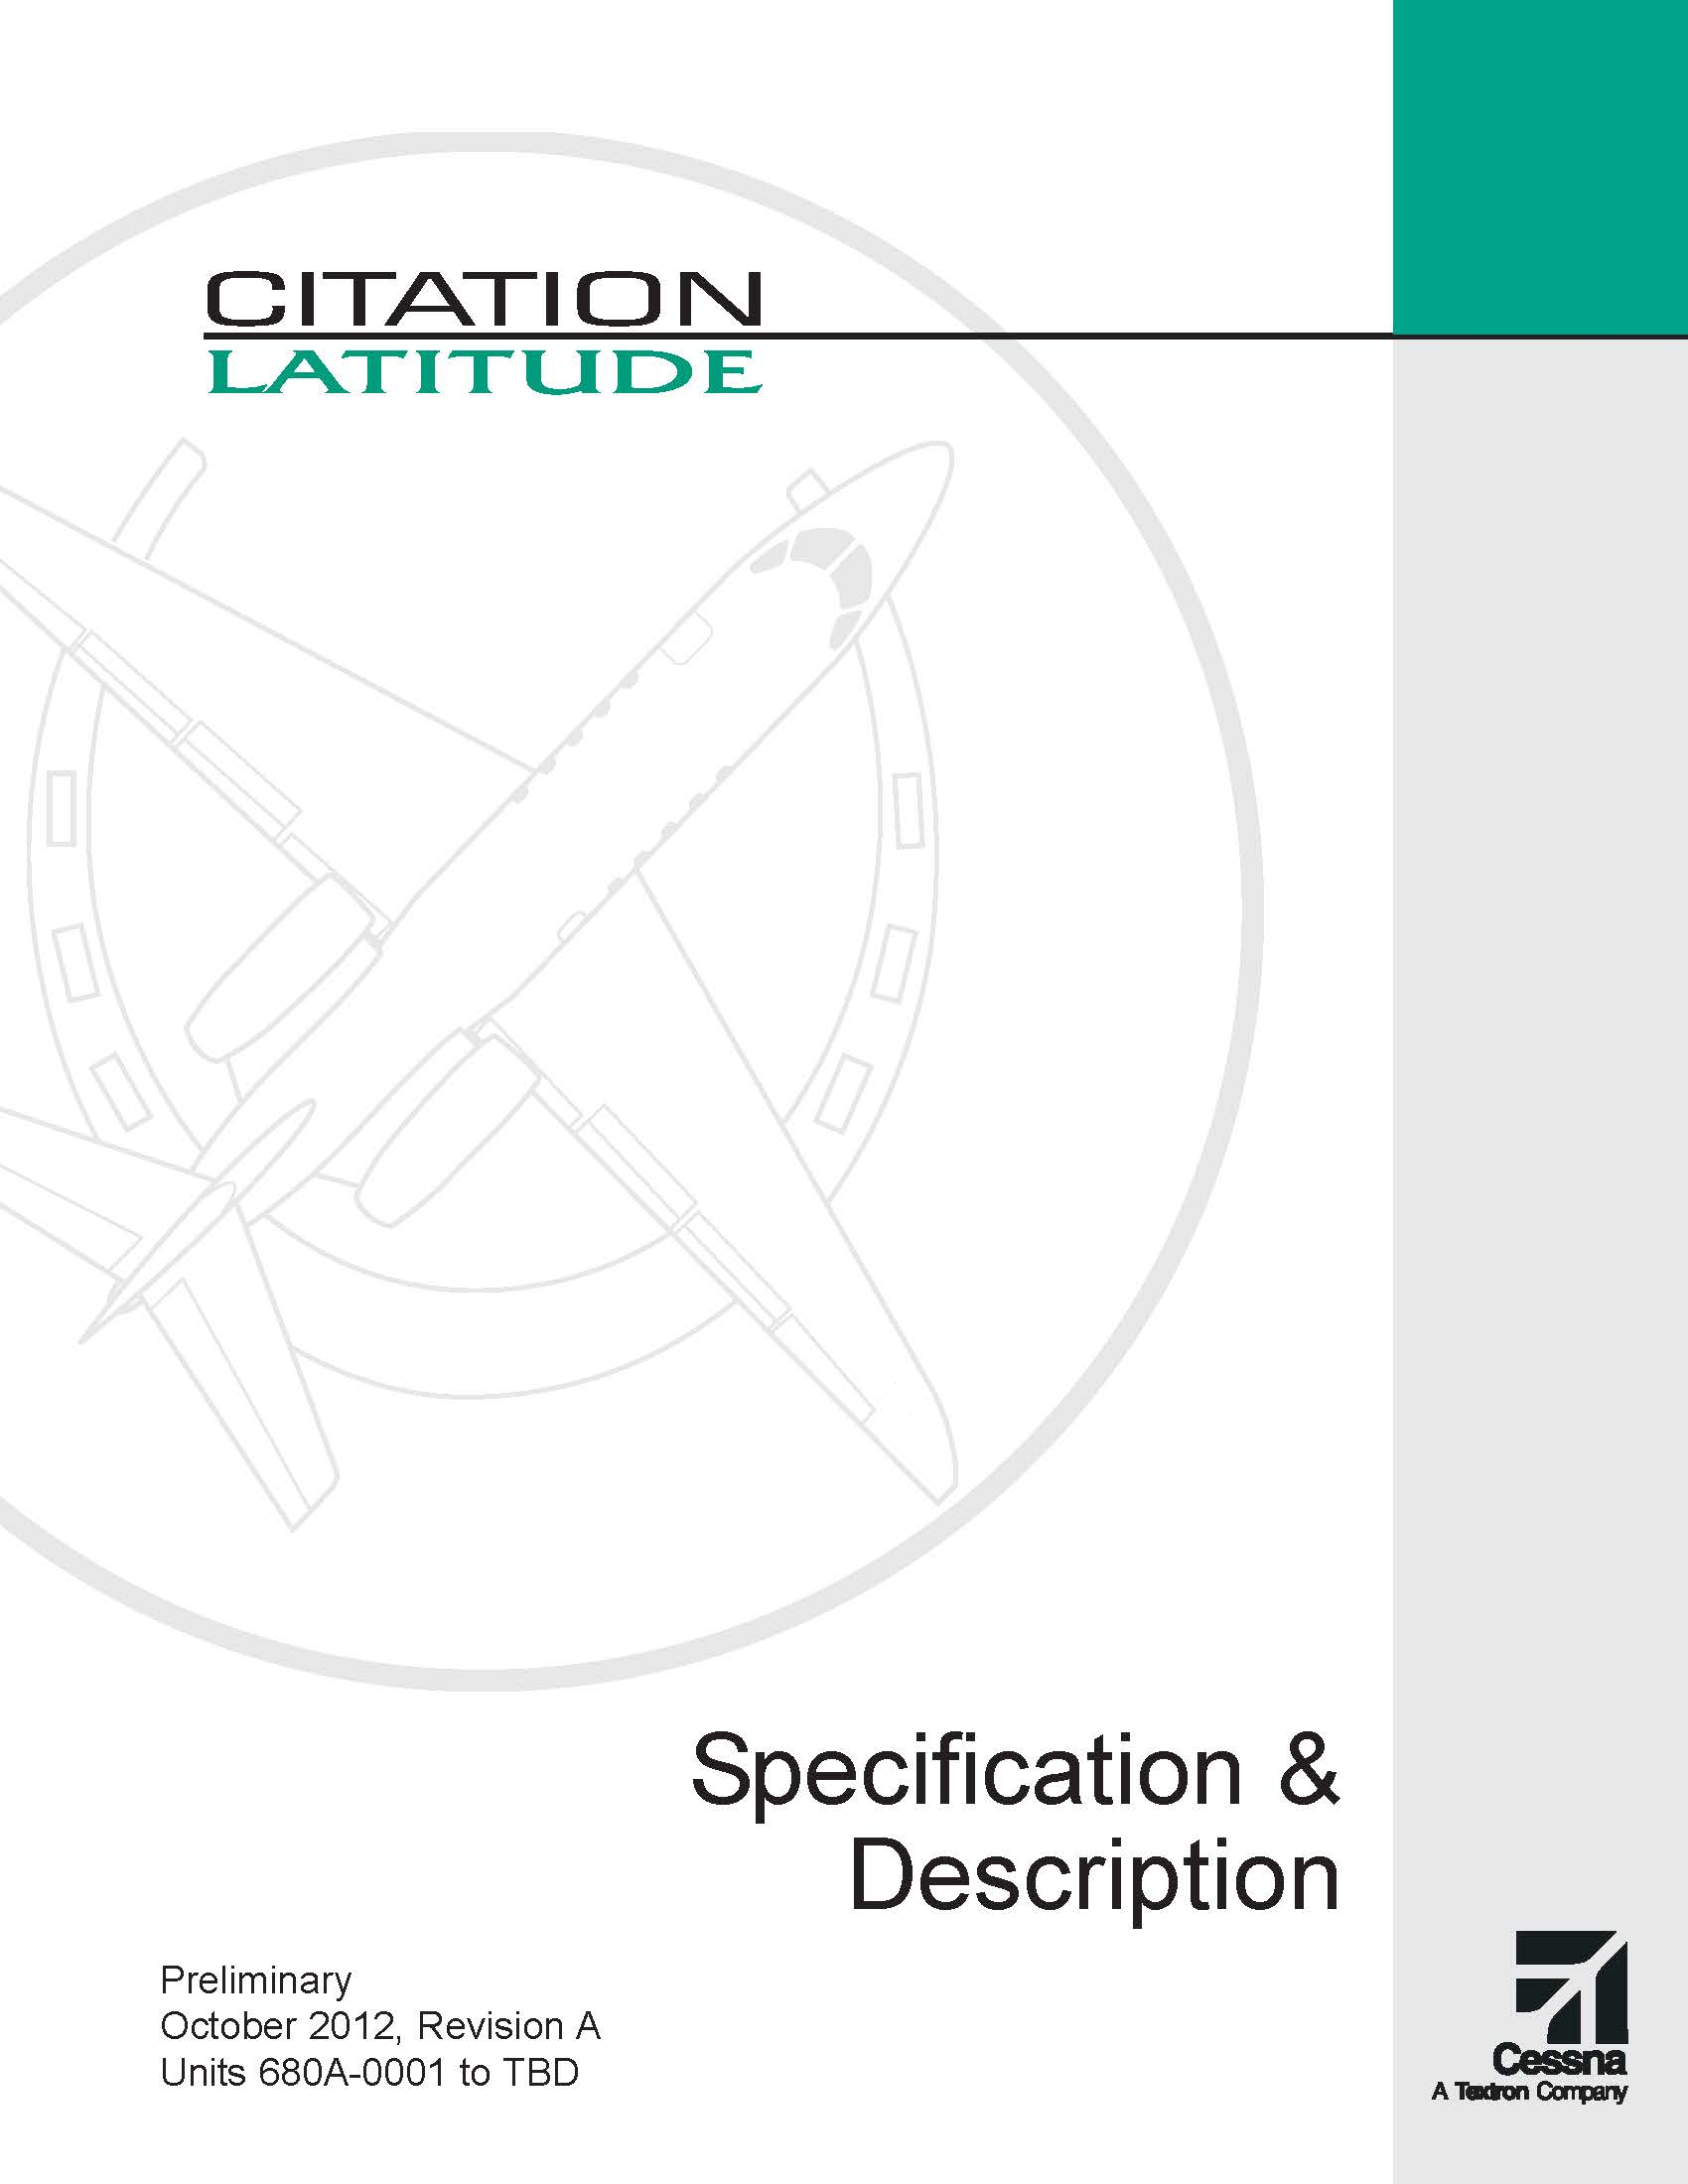 Citation Latitude spec and description brochure